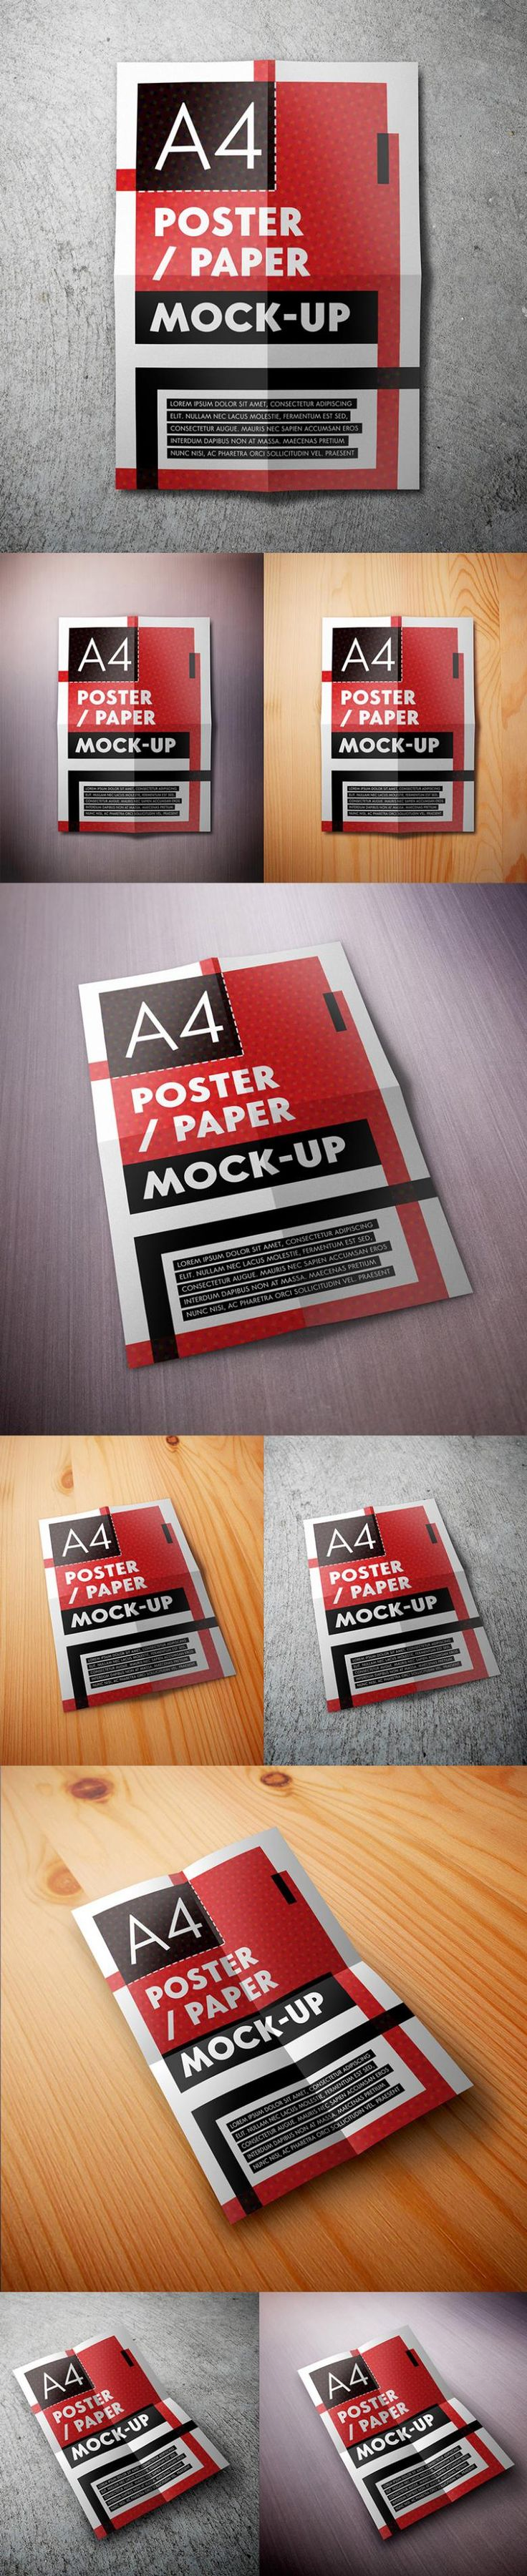 Free A4 Poster Mockups